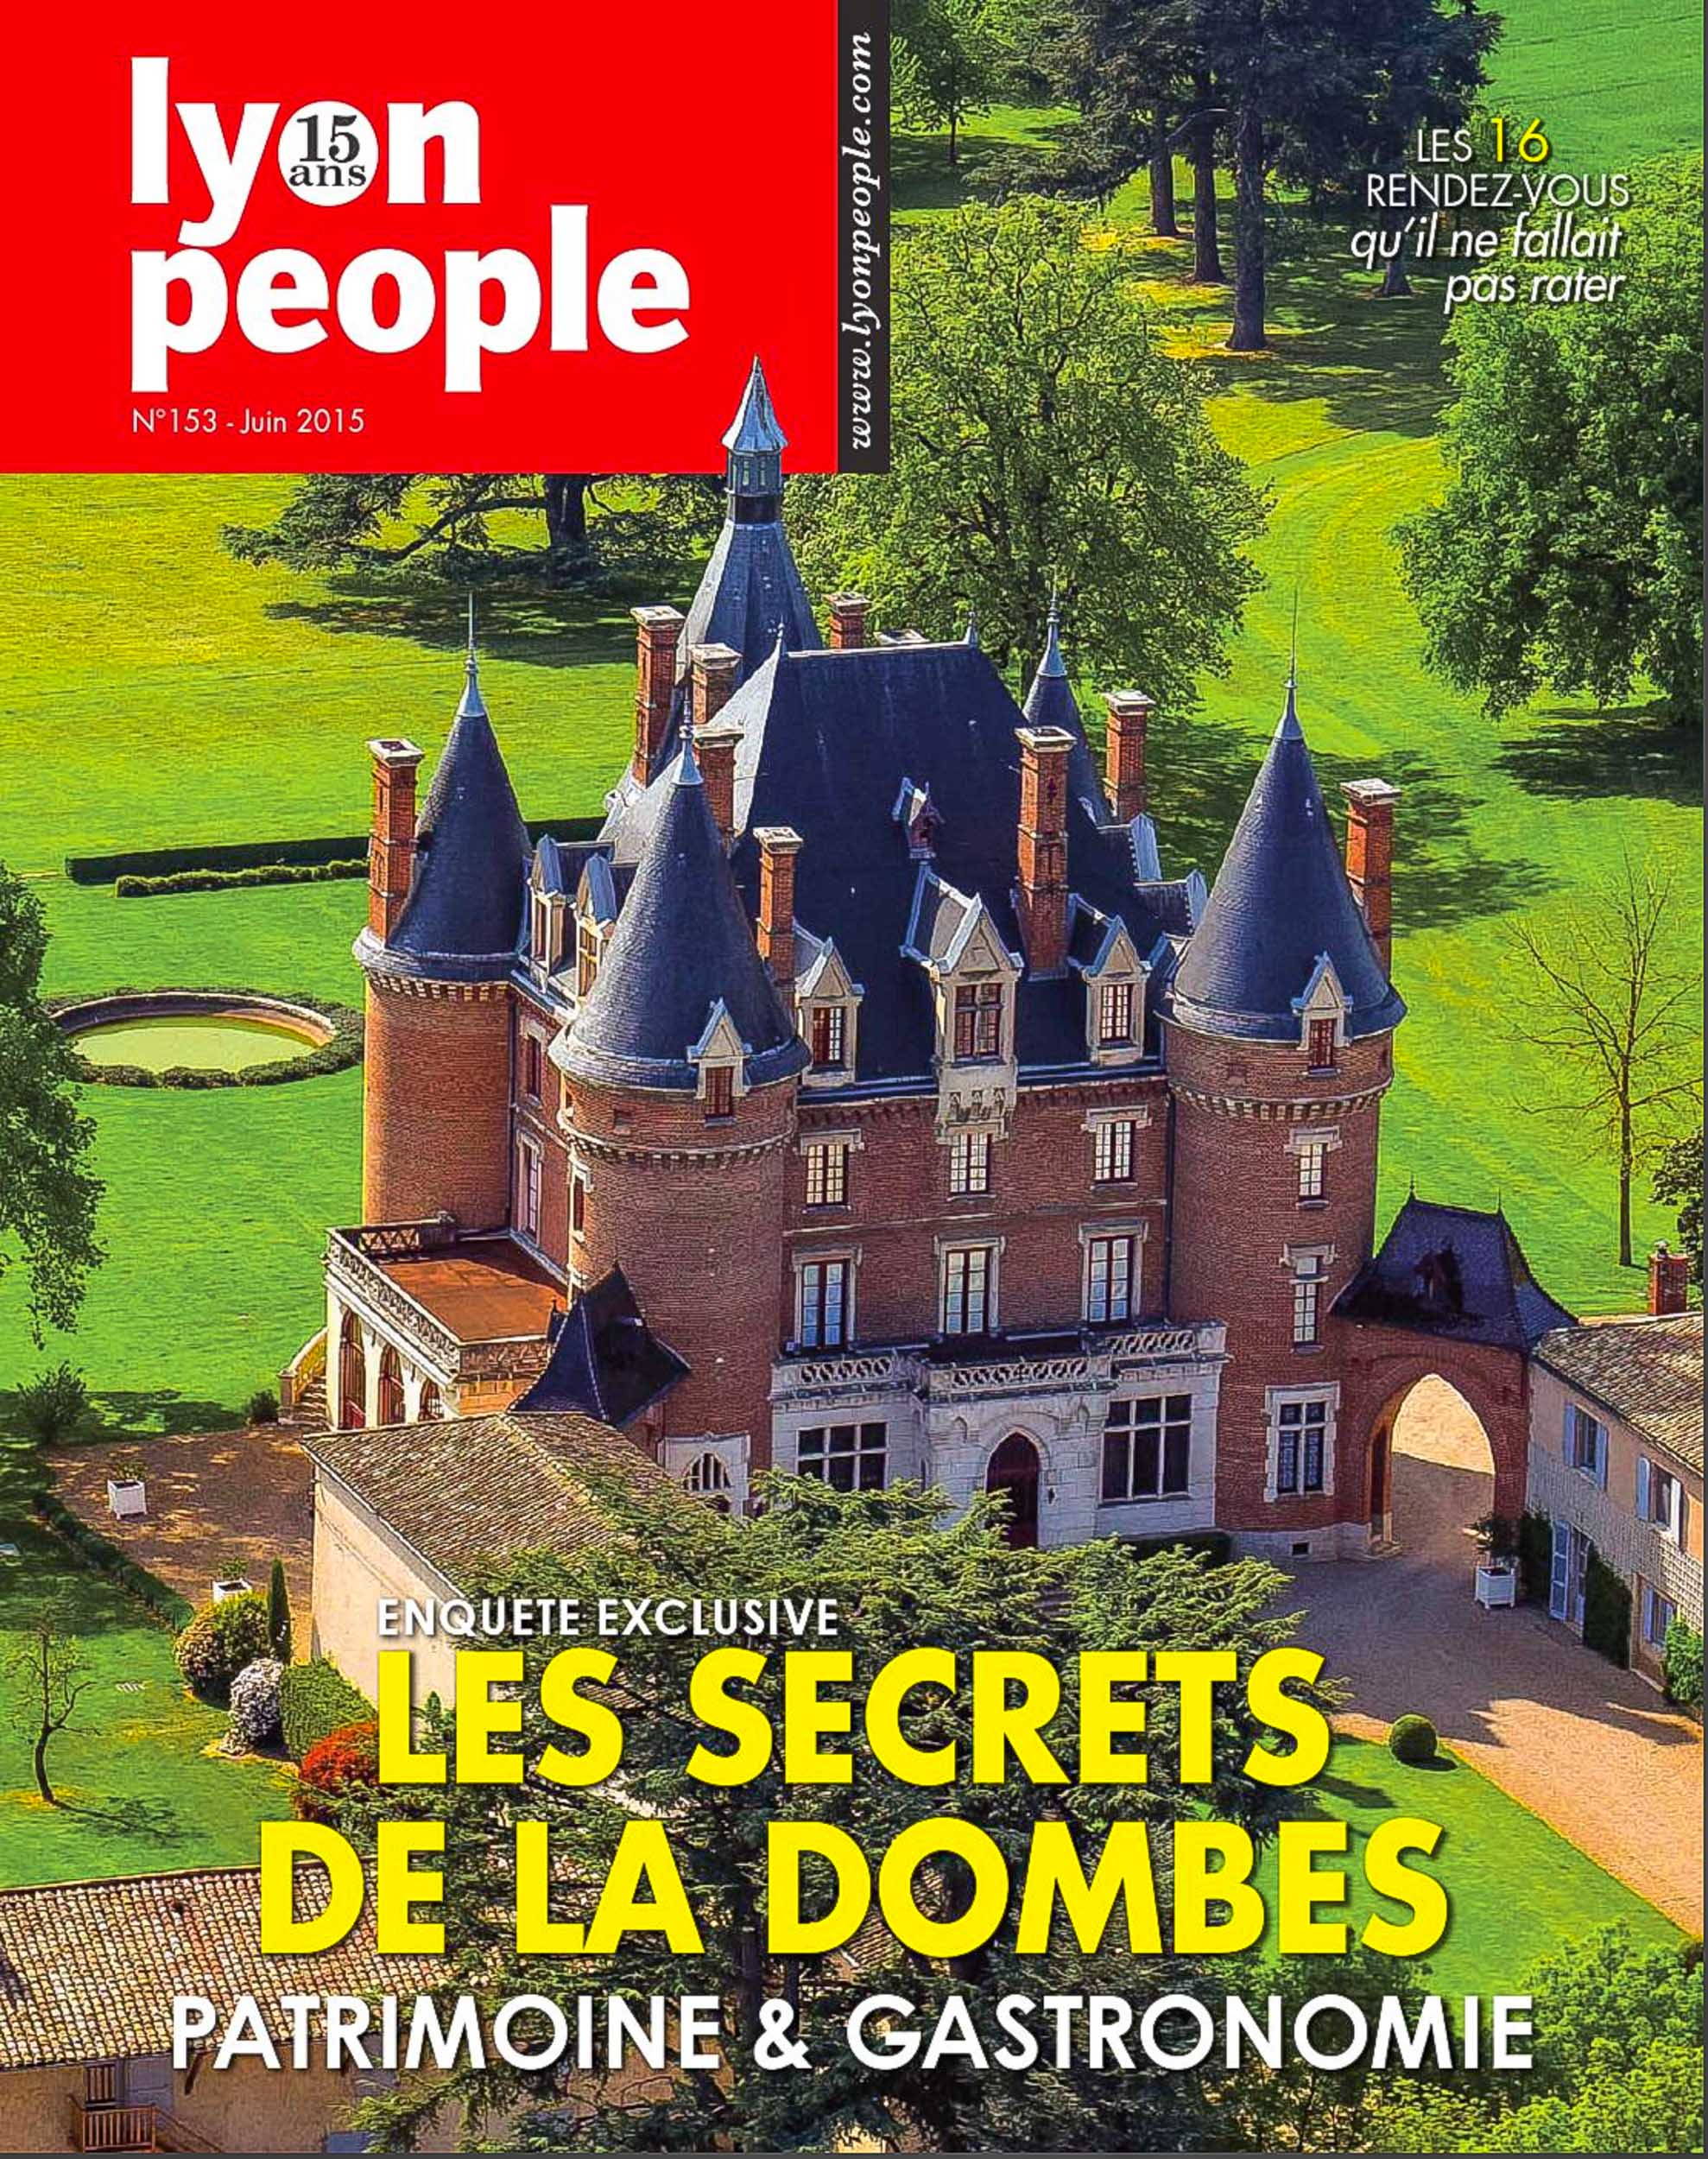 Couverture Dombes.jpg